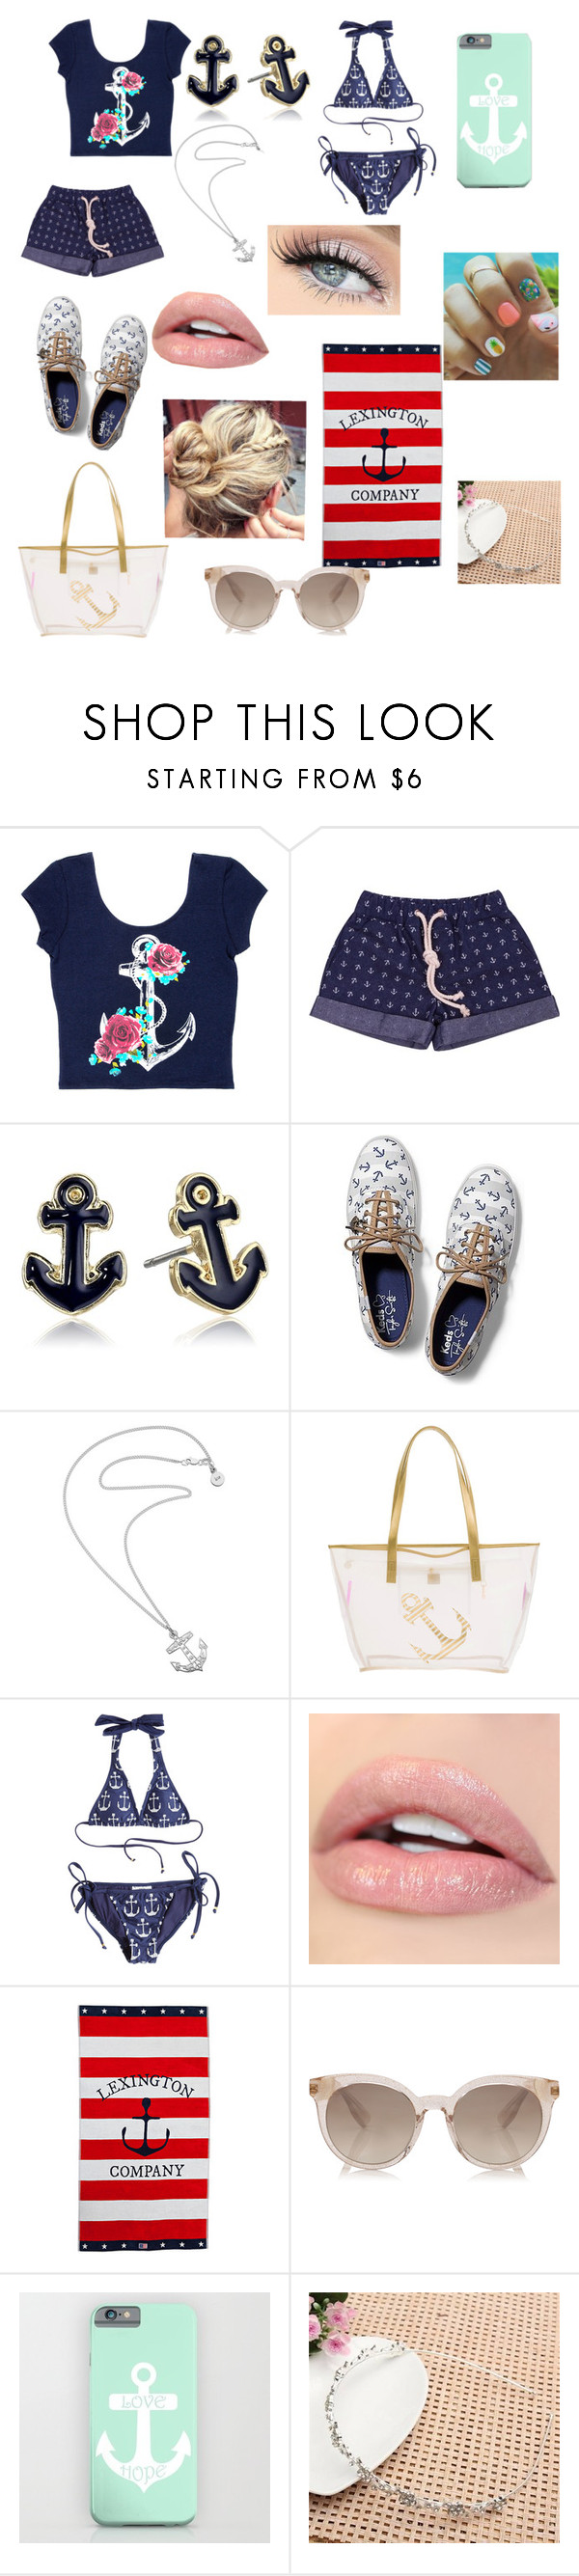 """""""Ahoi"""" by bae1991 ❤ liked on Polyvore featuring Grayson, Napier, Keds, Karen Walker, MACBETH, Amir Slama, GET LOST and Lexington"""